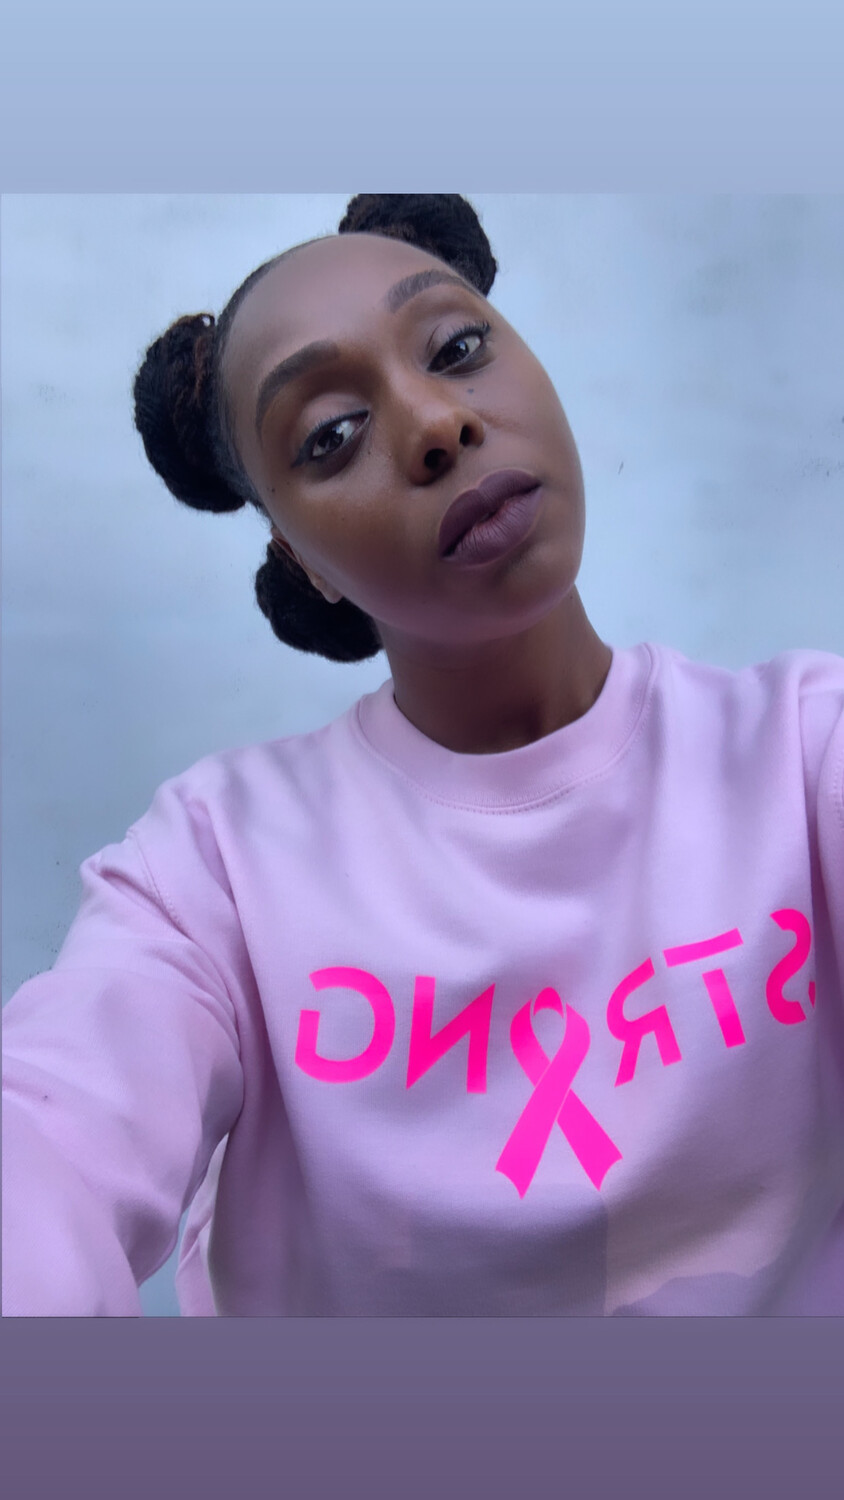 STRONG (Breast Cancer Awareness Collection)